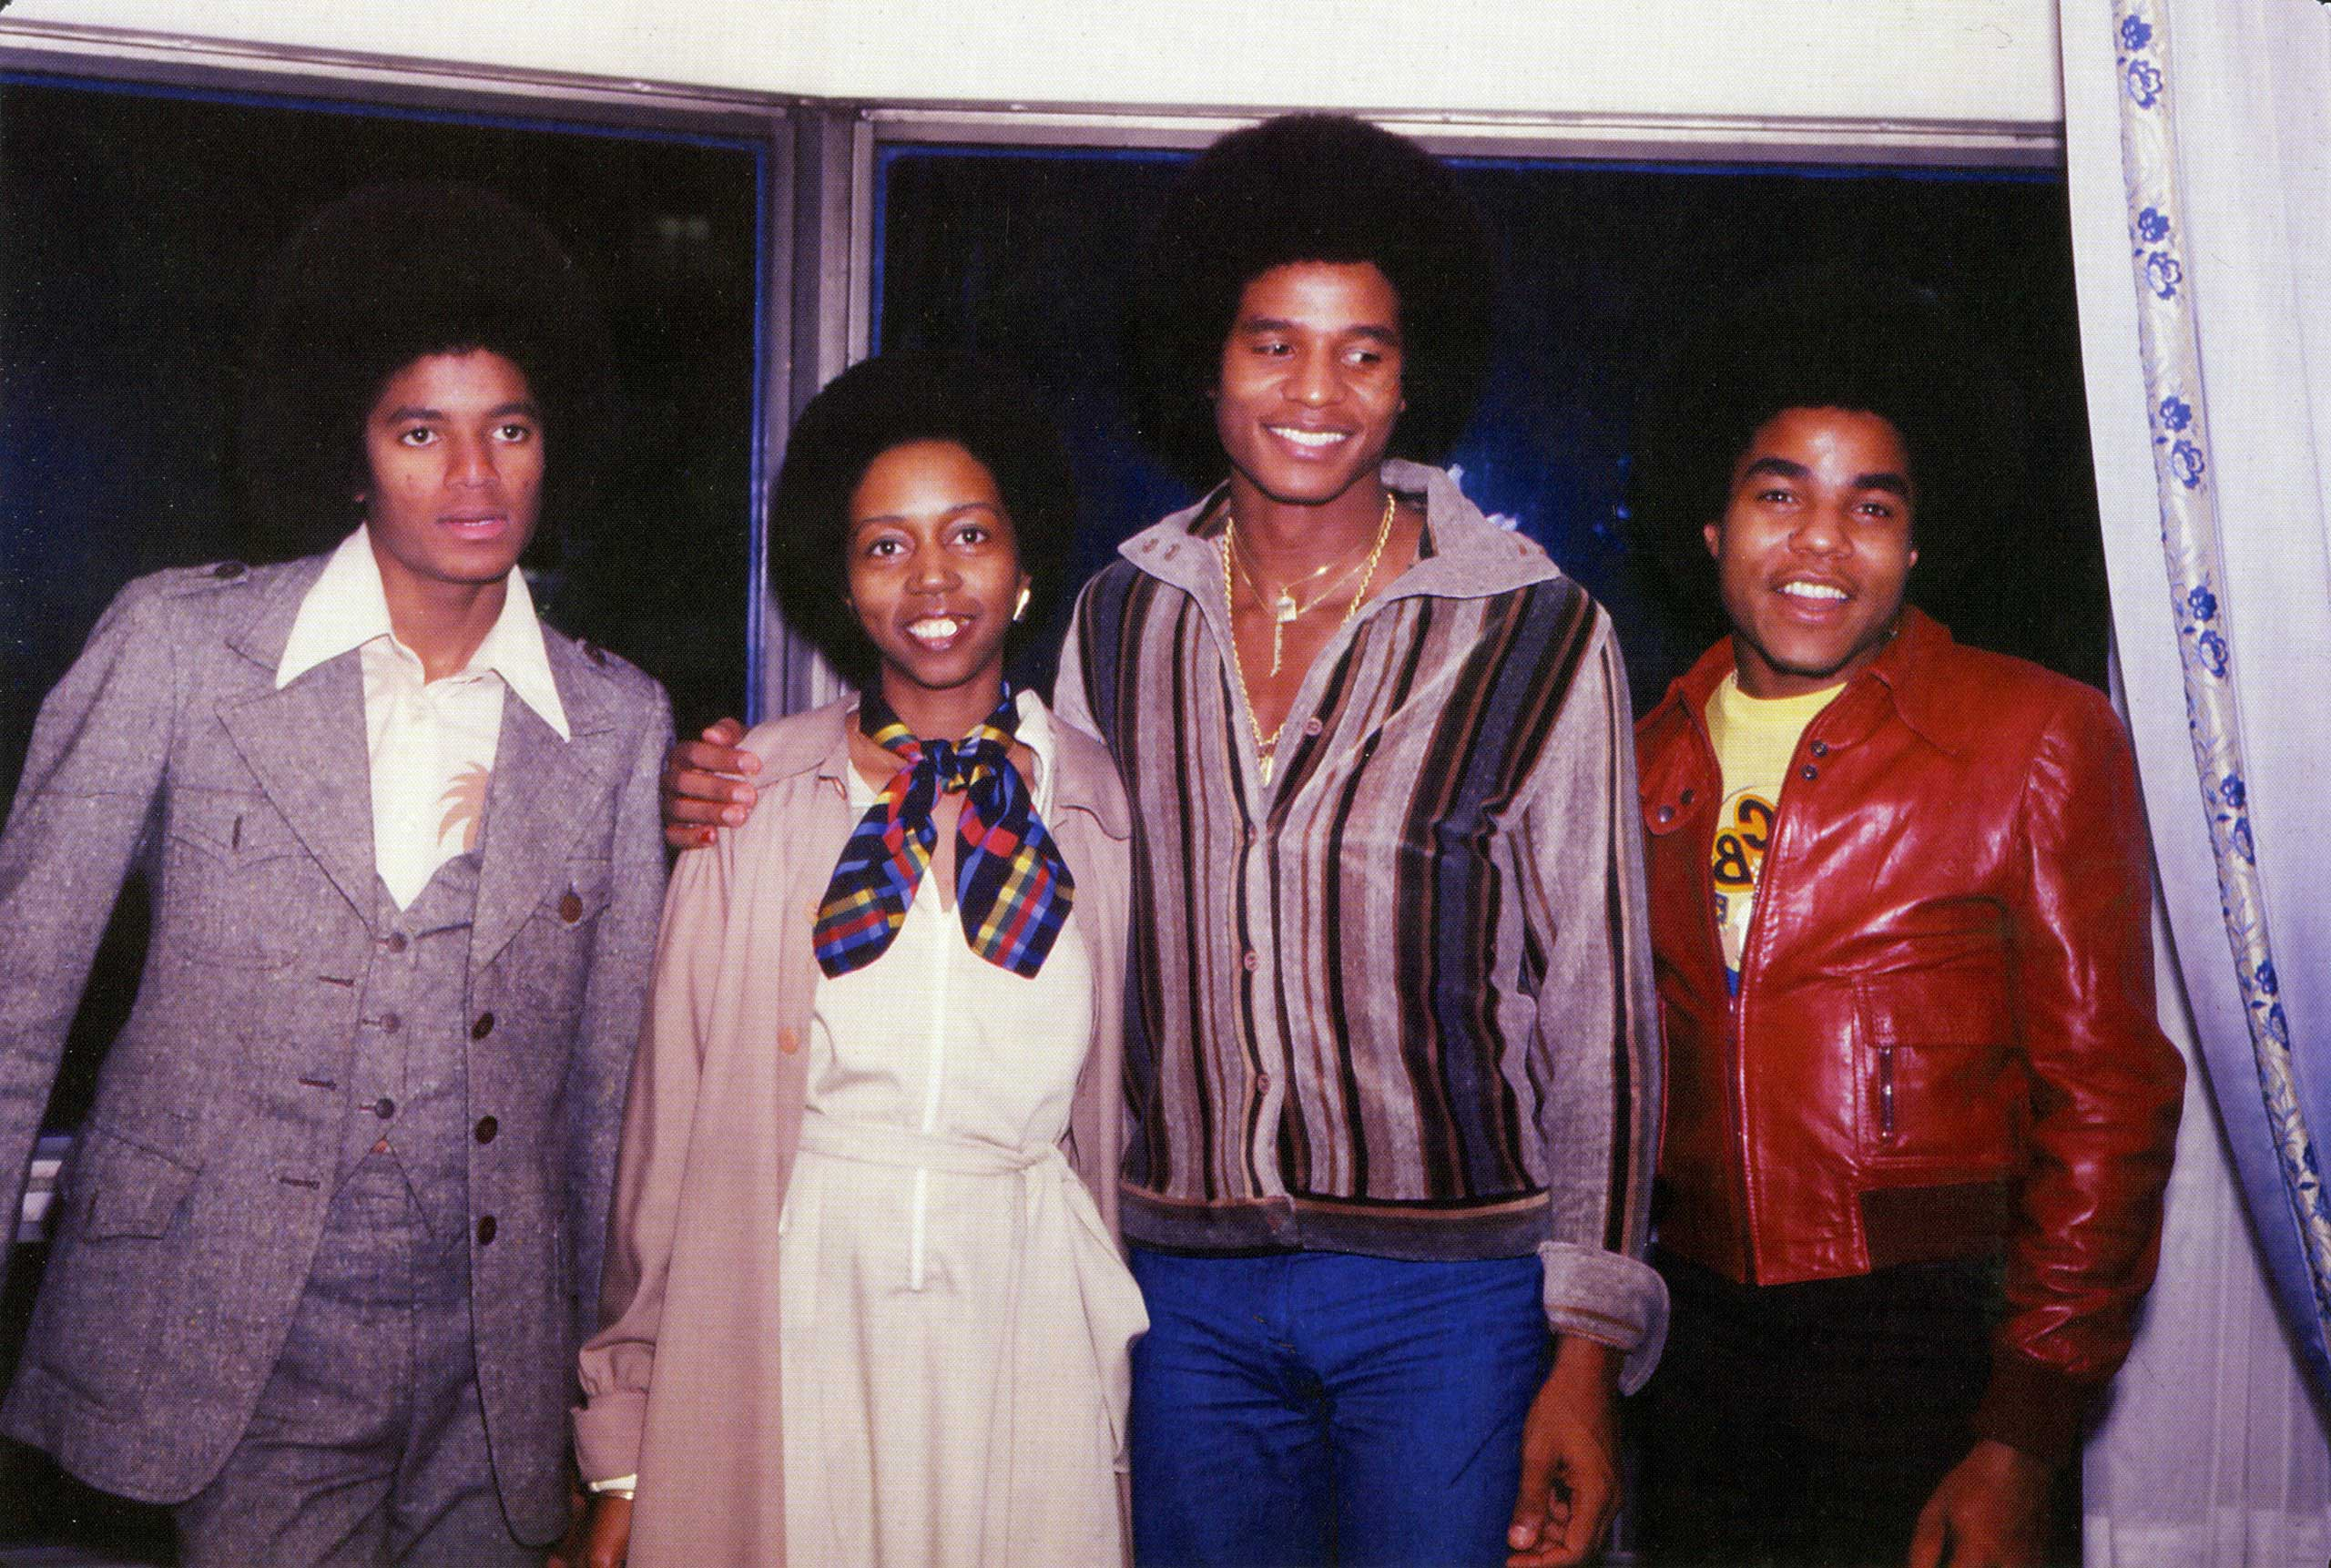 From left: Michael Jackson, Sandra Trim-DaCosta, Jackie Jackson and Tito Jackson in New York City in the 1970s.